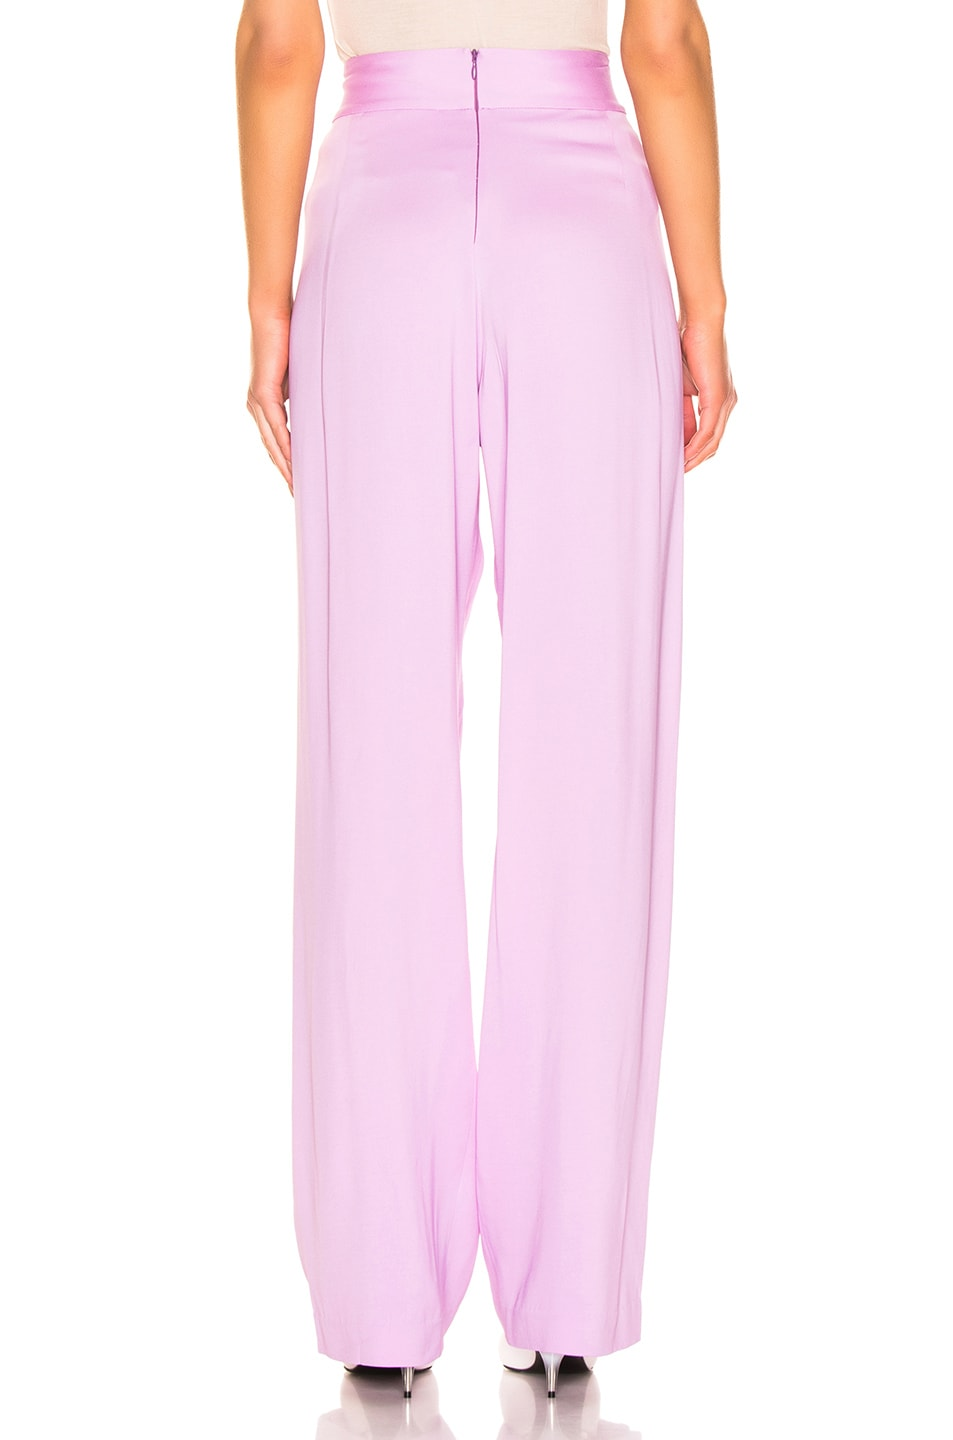 Image 3 of Michelle Mason Wise Leg Trouser in Lilac